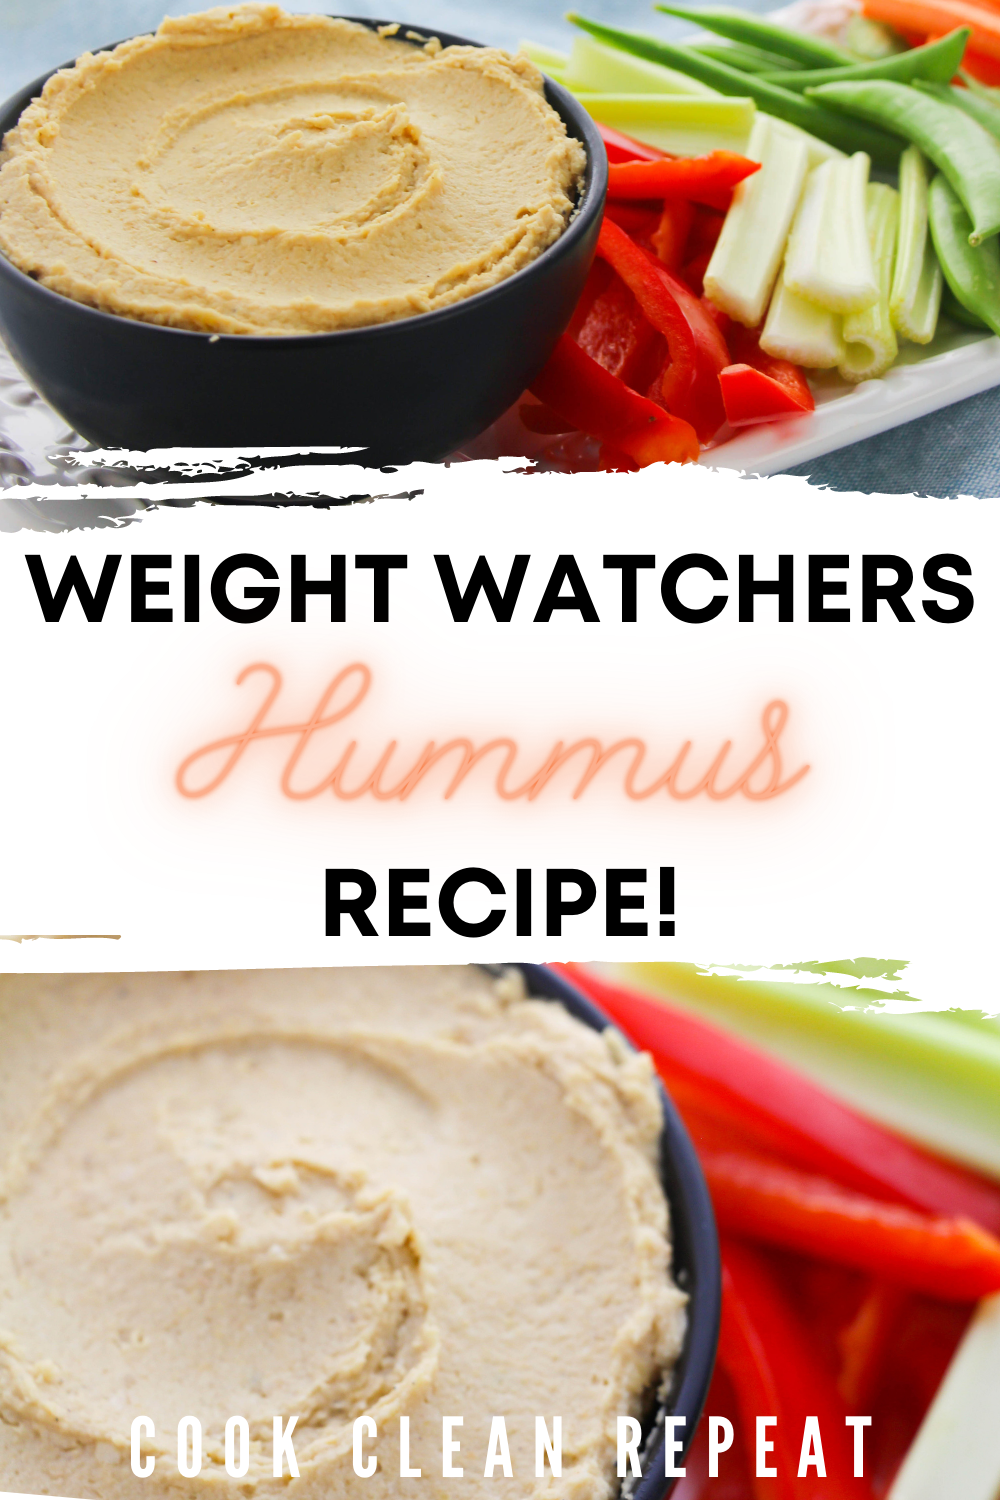 Pin showing the finished weight watchers hummus recipe ready to eat with title across the middle.